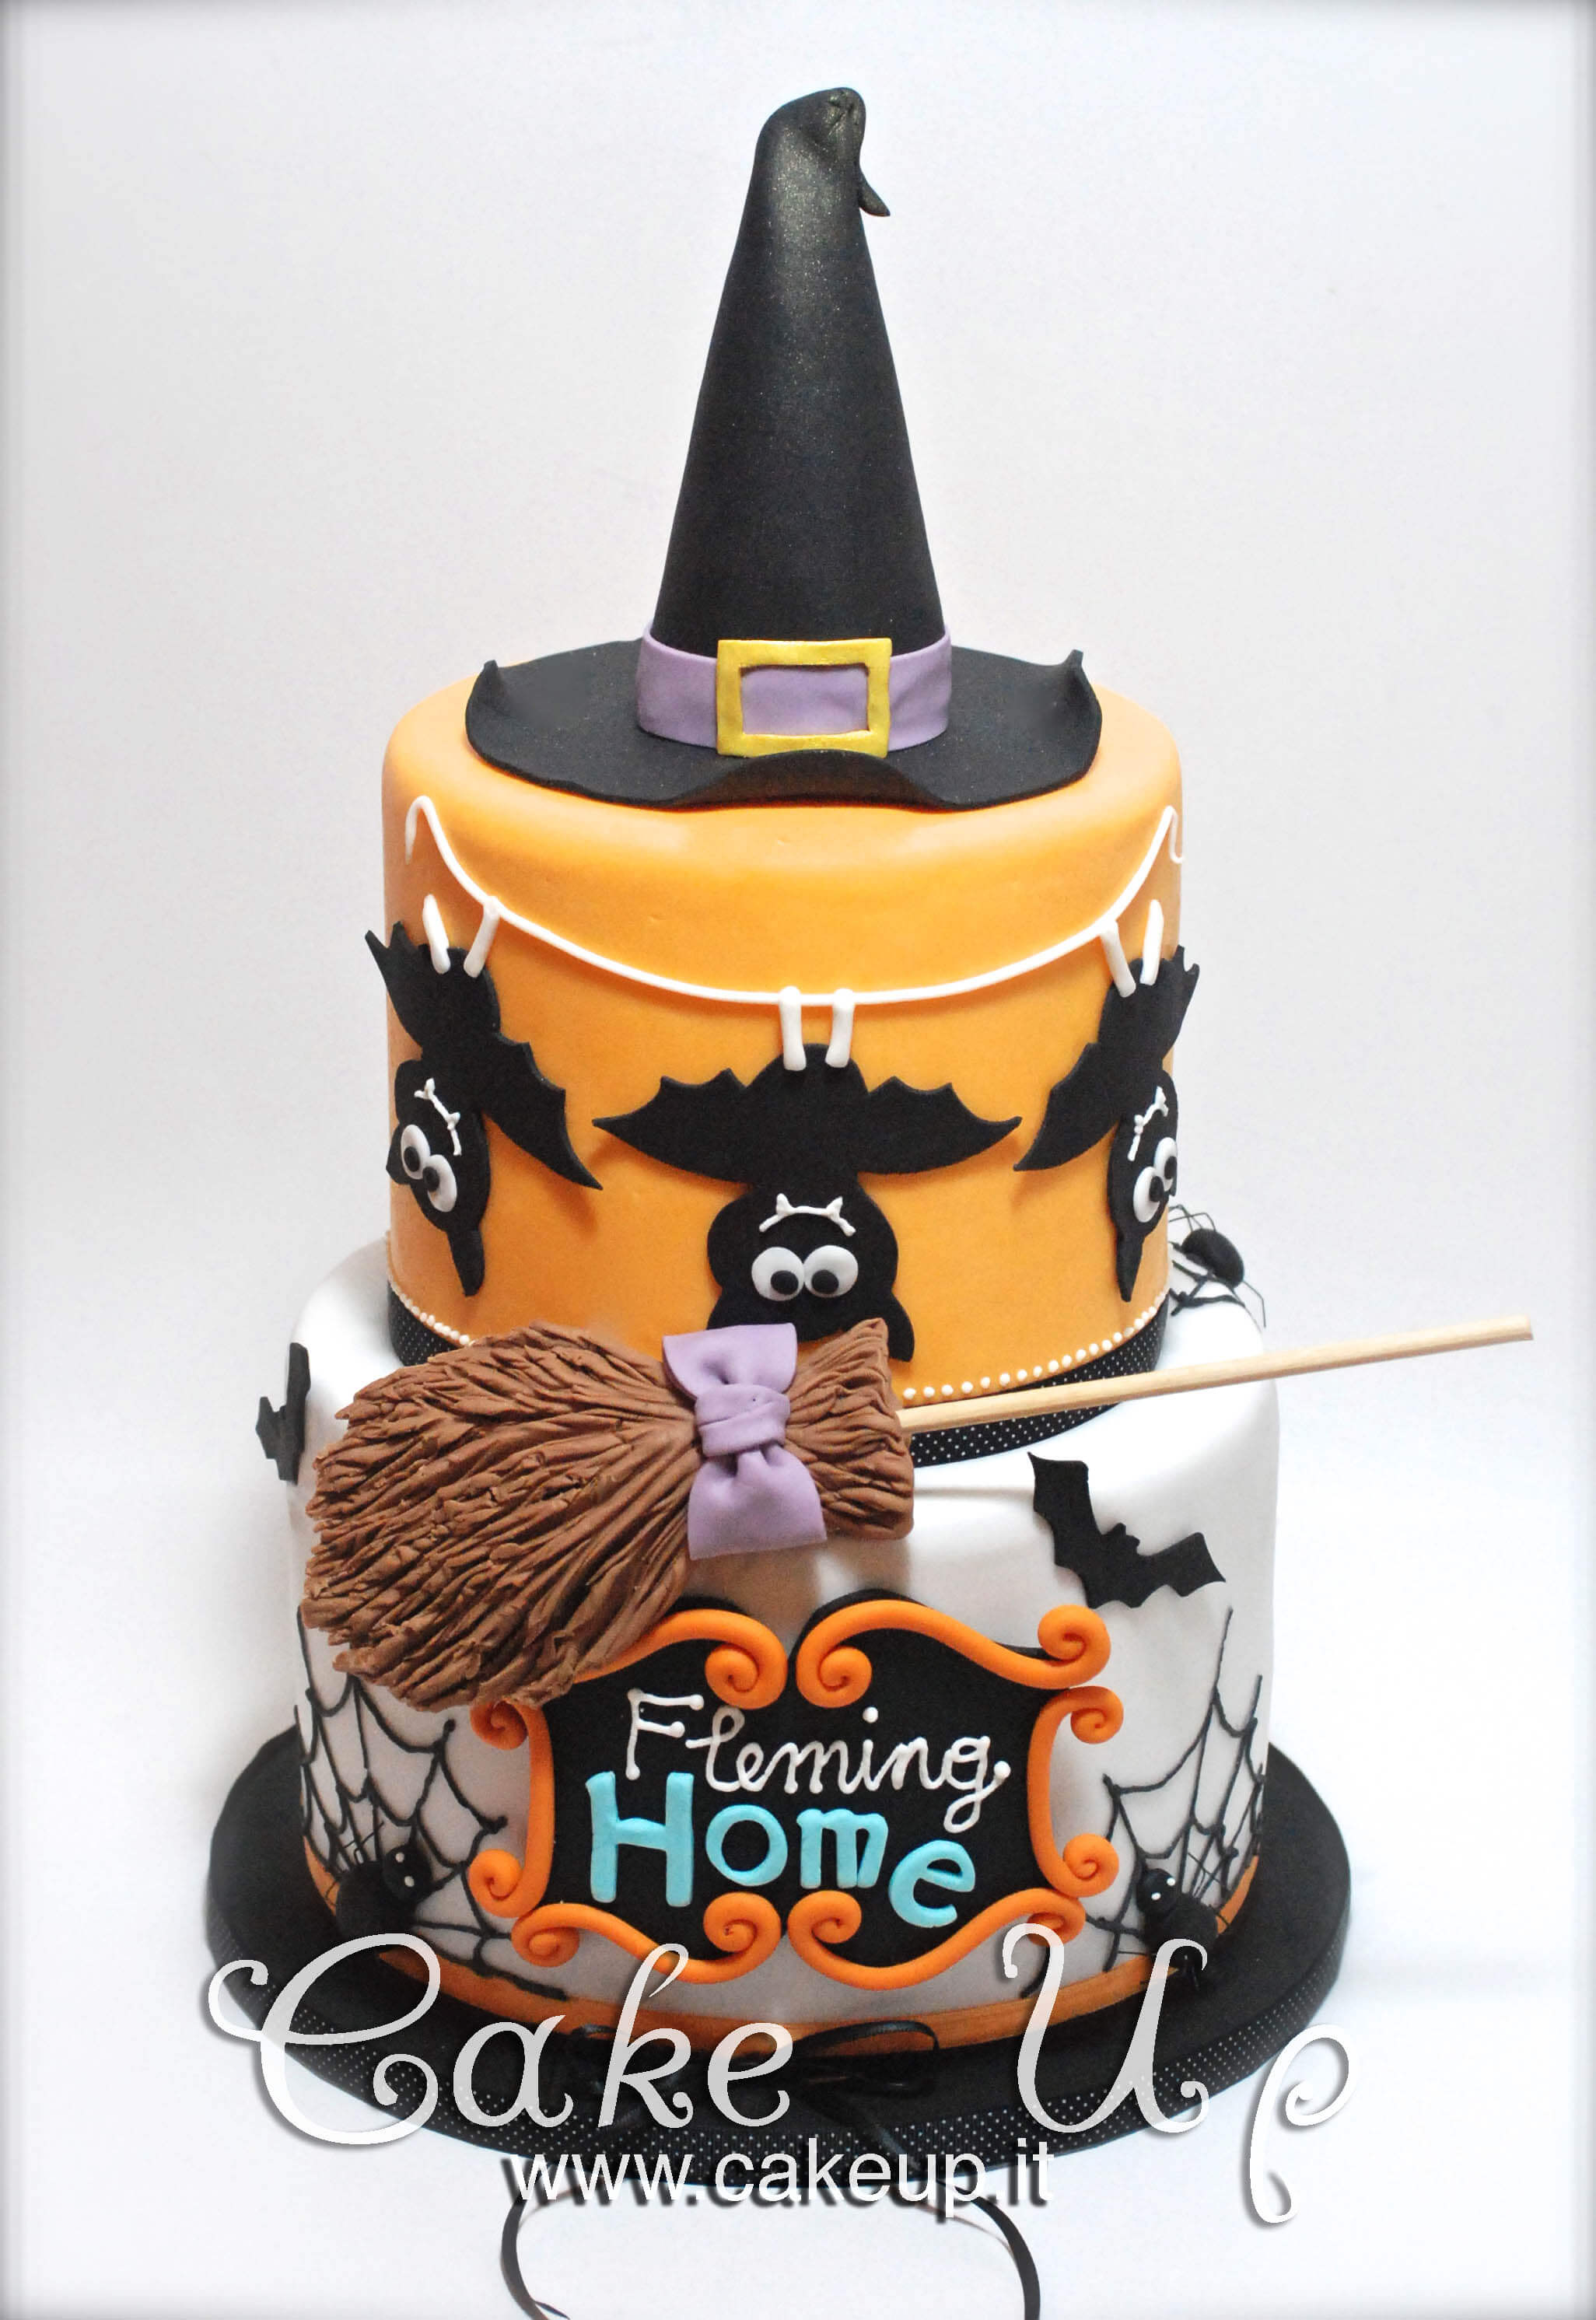 This one is from Cake Up Sweet Creations, based in Italy. This is a very cool tiered cake that is perfect for Halloween. The array of colours and even handmade broom stick really make this cake stand out and will dominate any Halloween party.